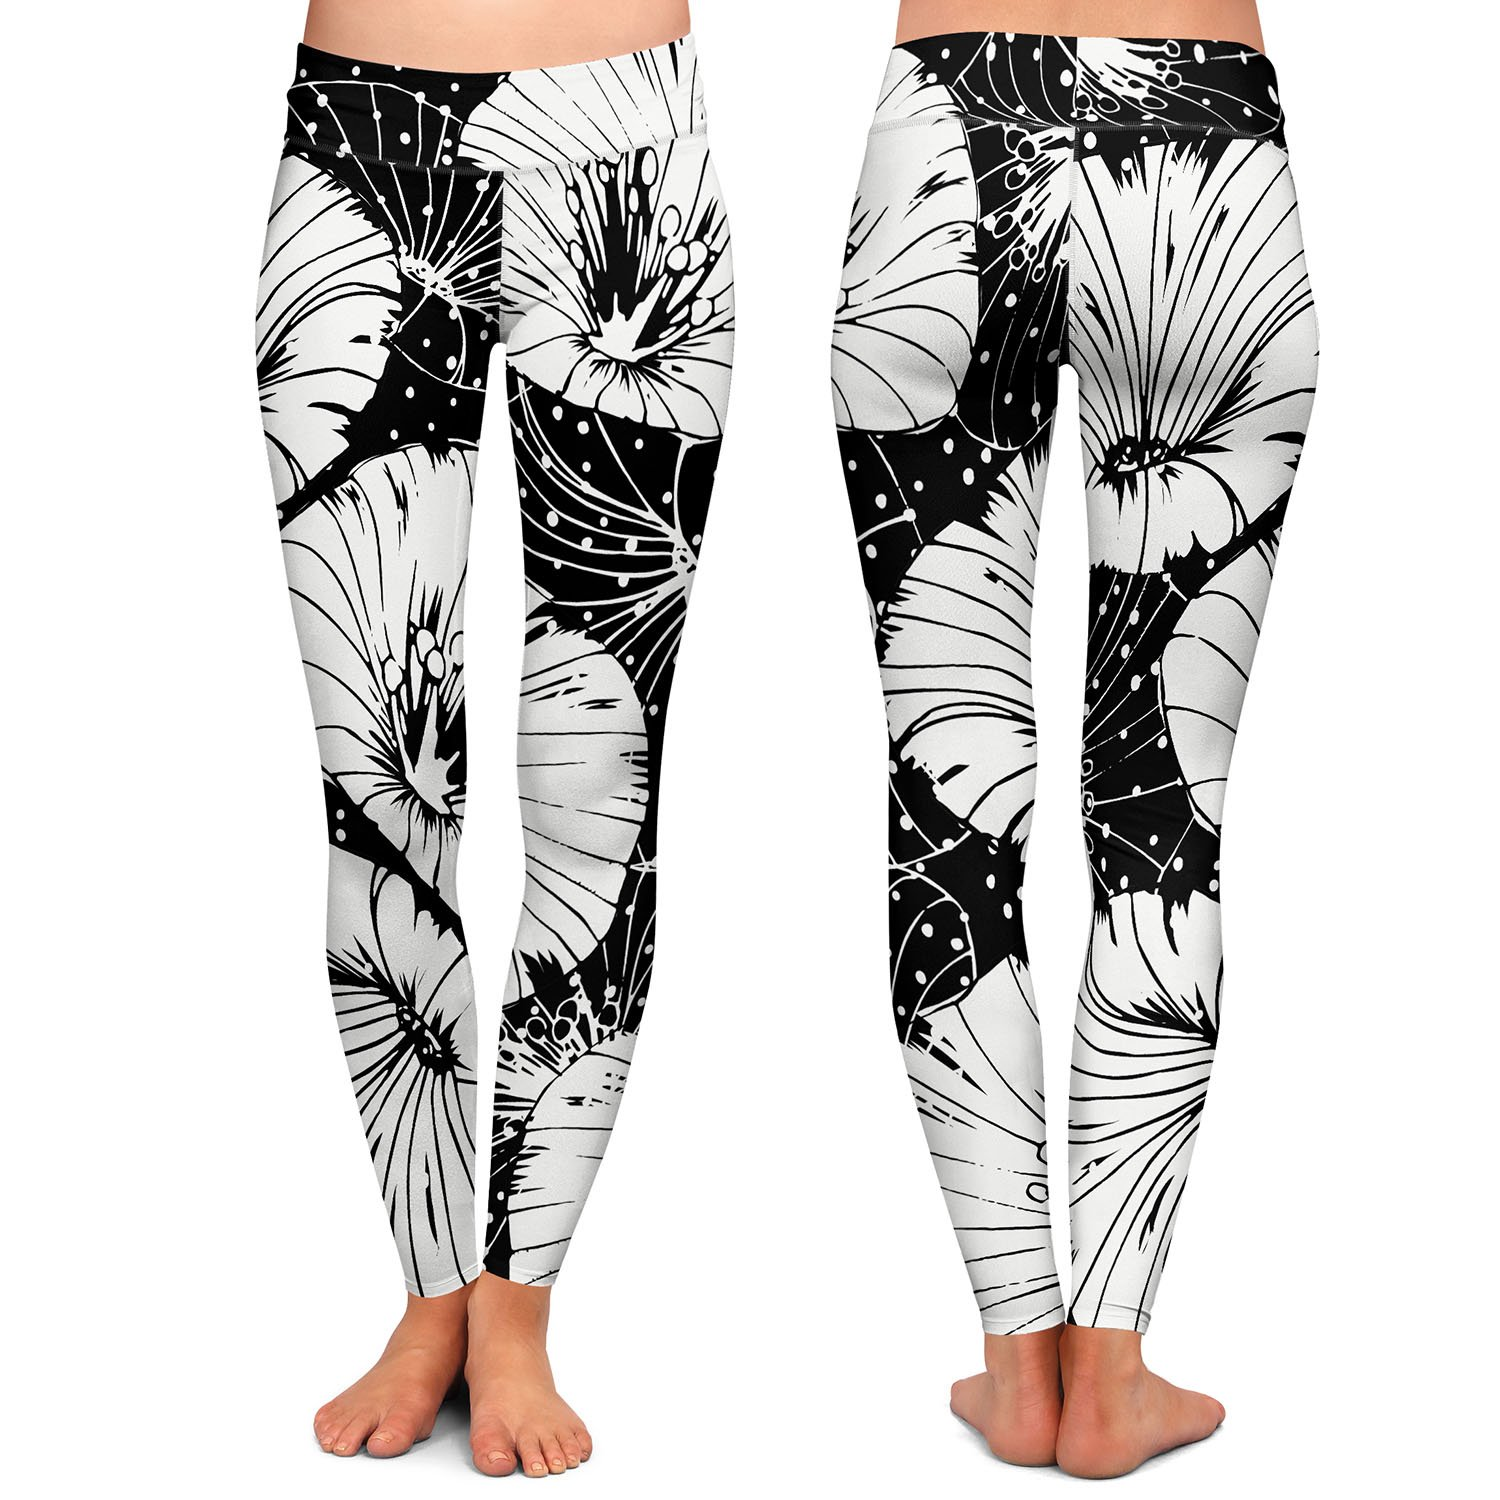 Athletic Yoga Leggings from DiaNoche Designs by Zara Martina Black White Flowers